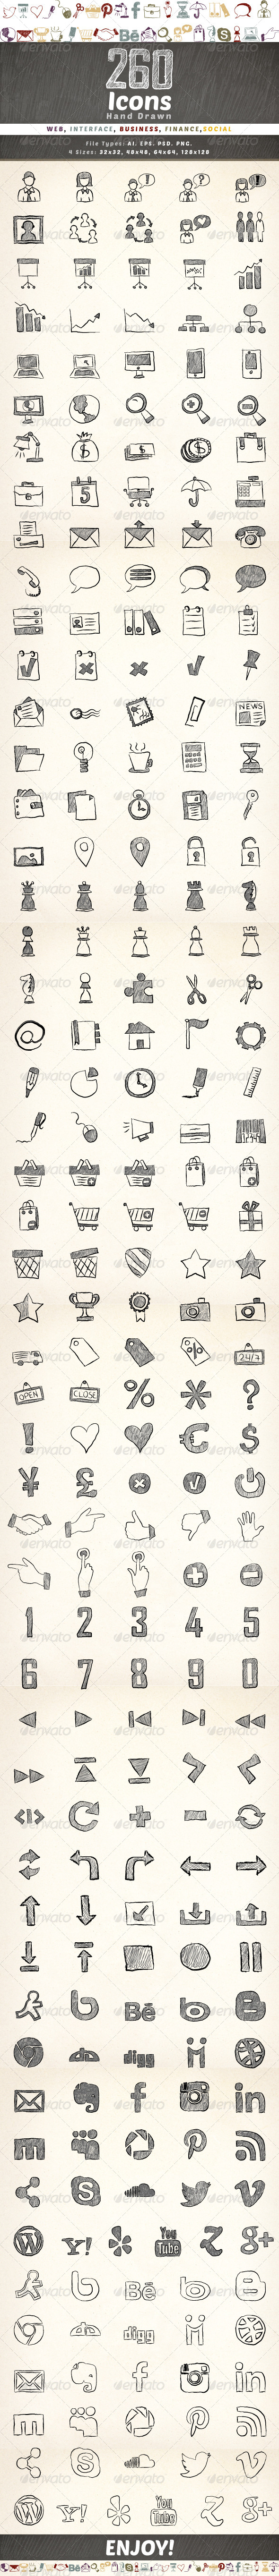 260 Hand Drawn Icons - Icons